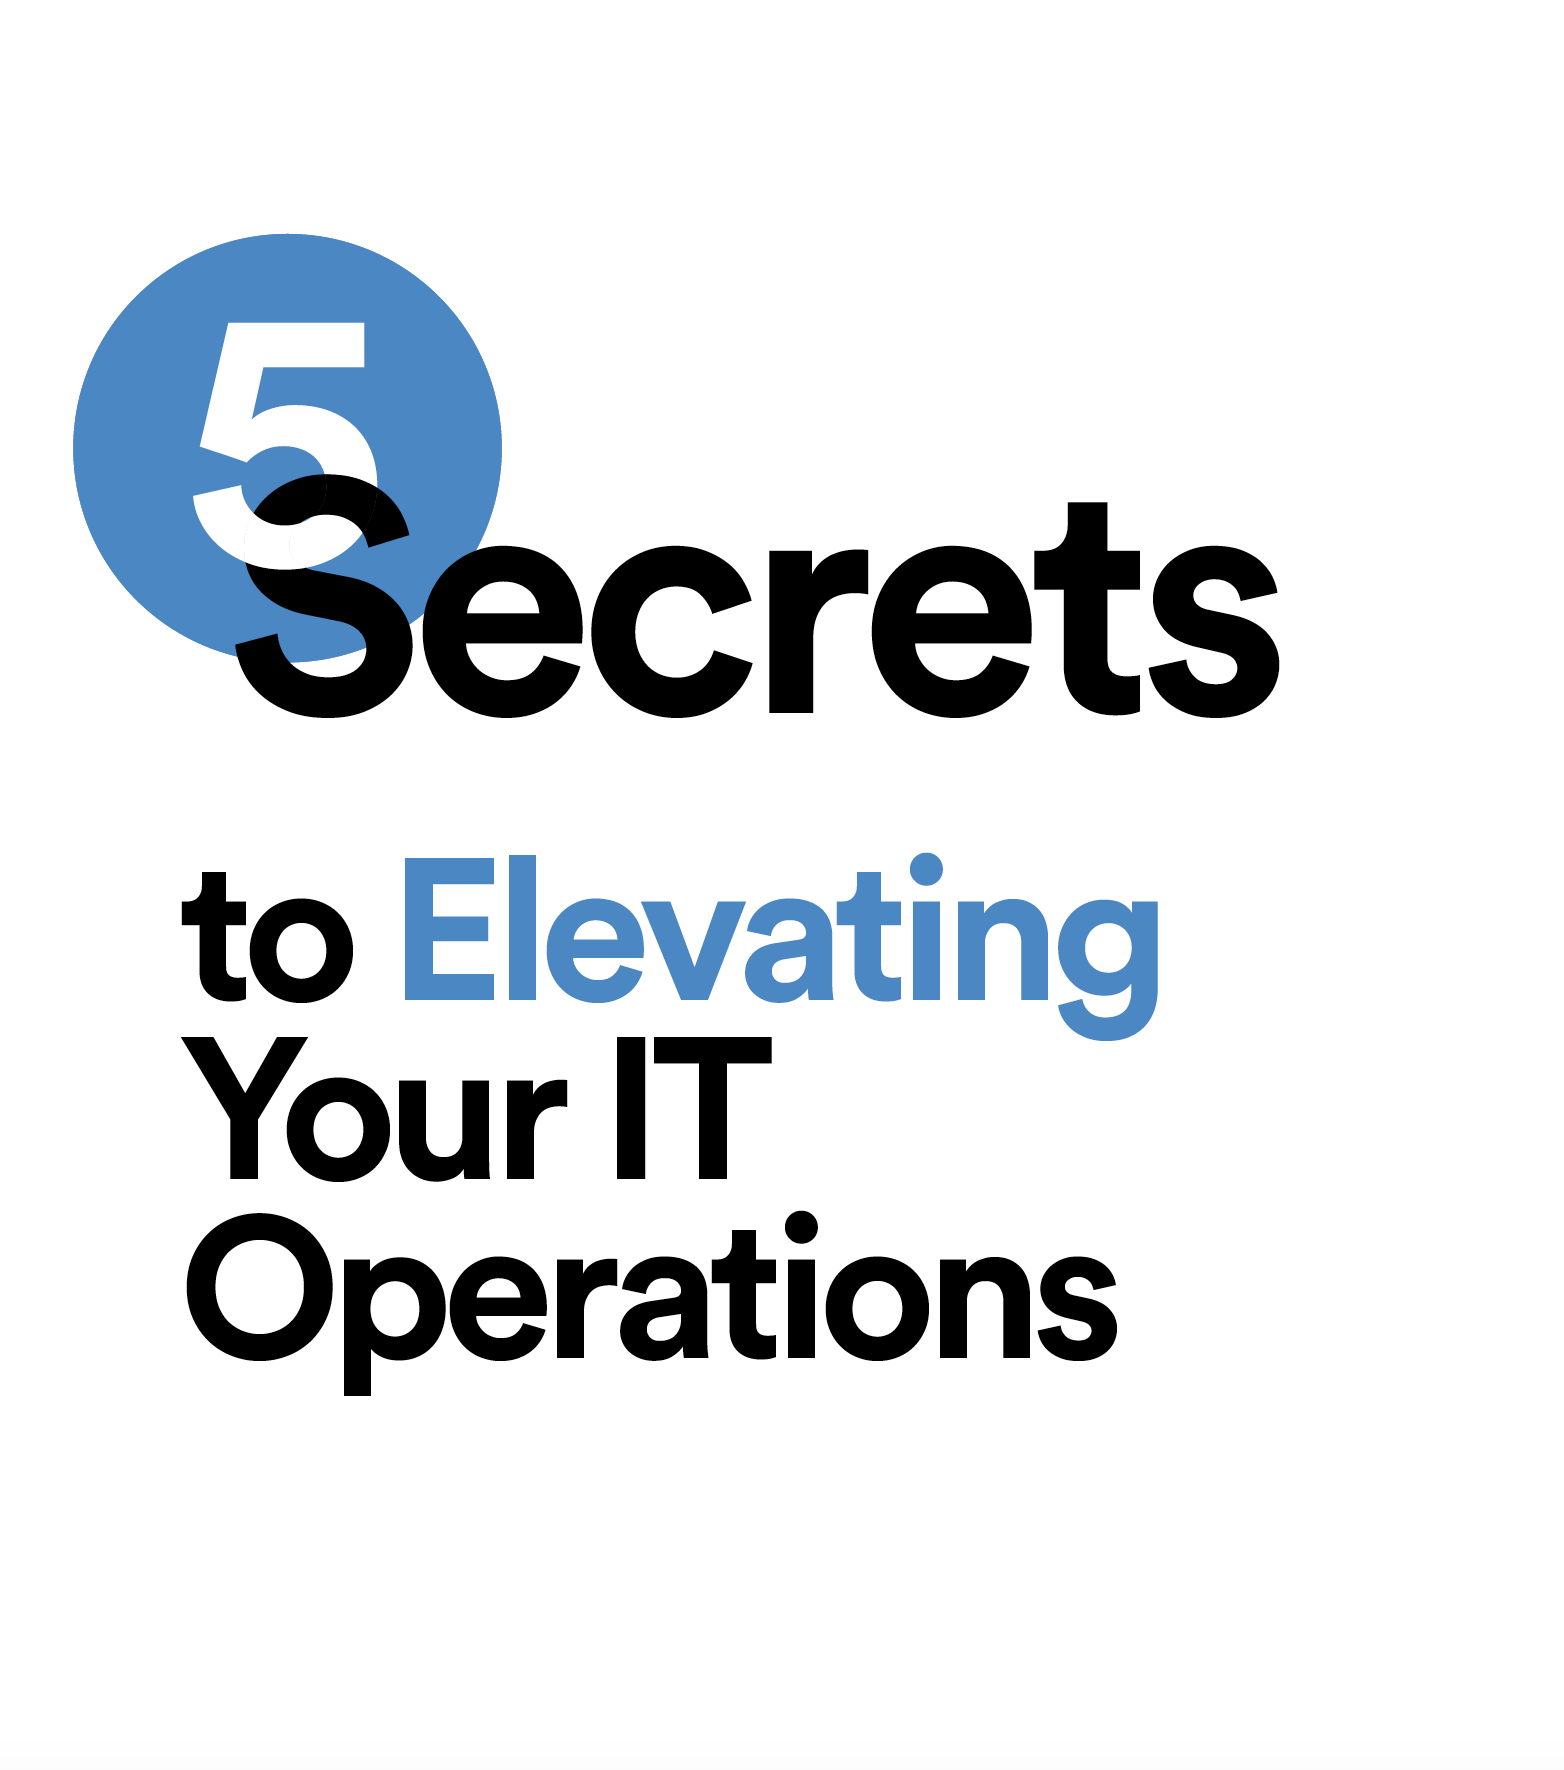 5 Secrets to Elevating Your IT Operations